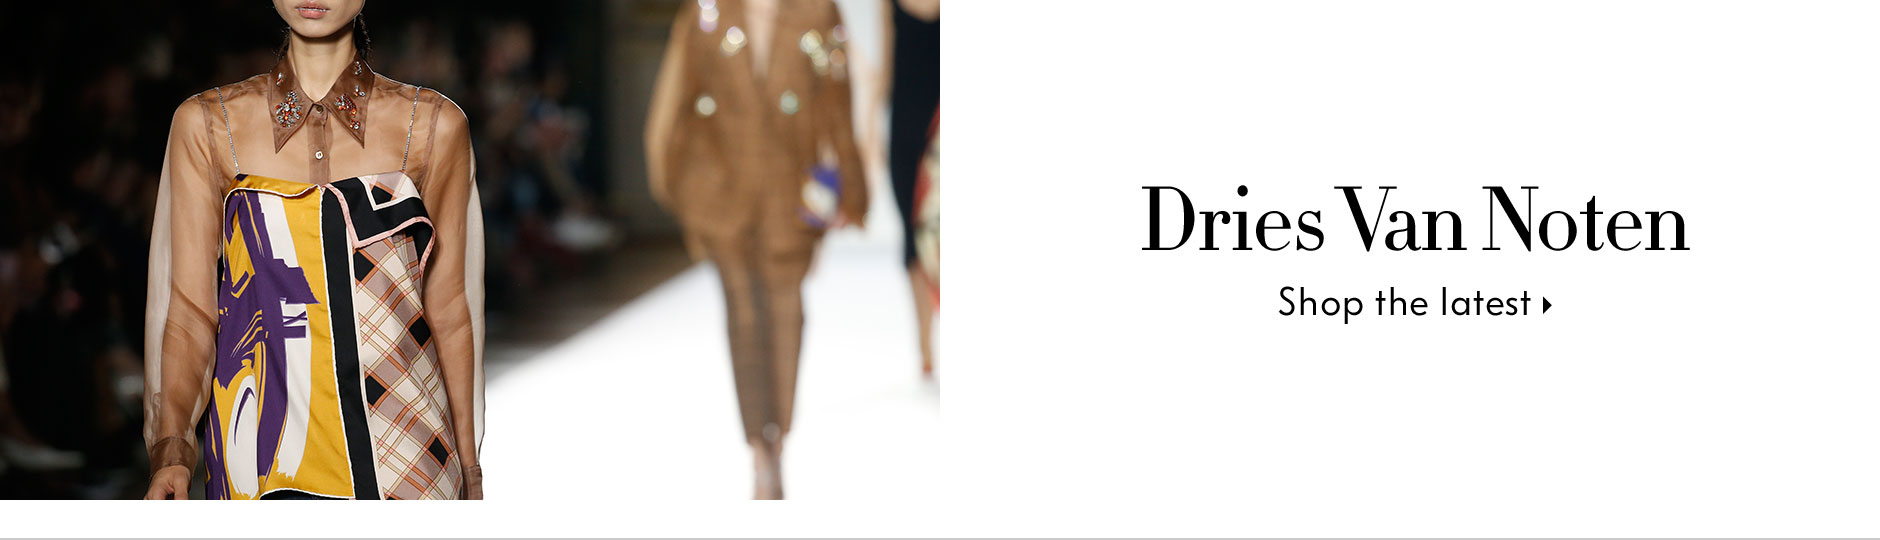 Dries Van Noten - Shop the latest